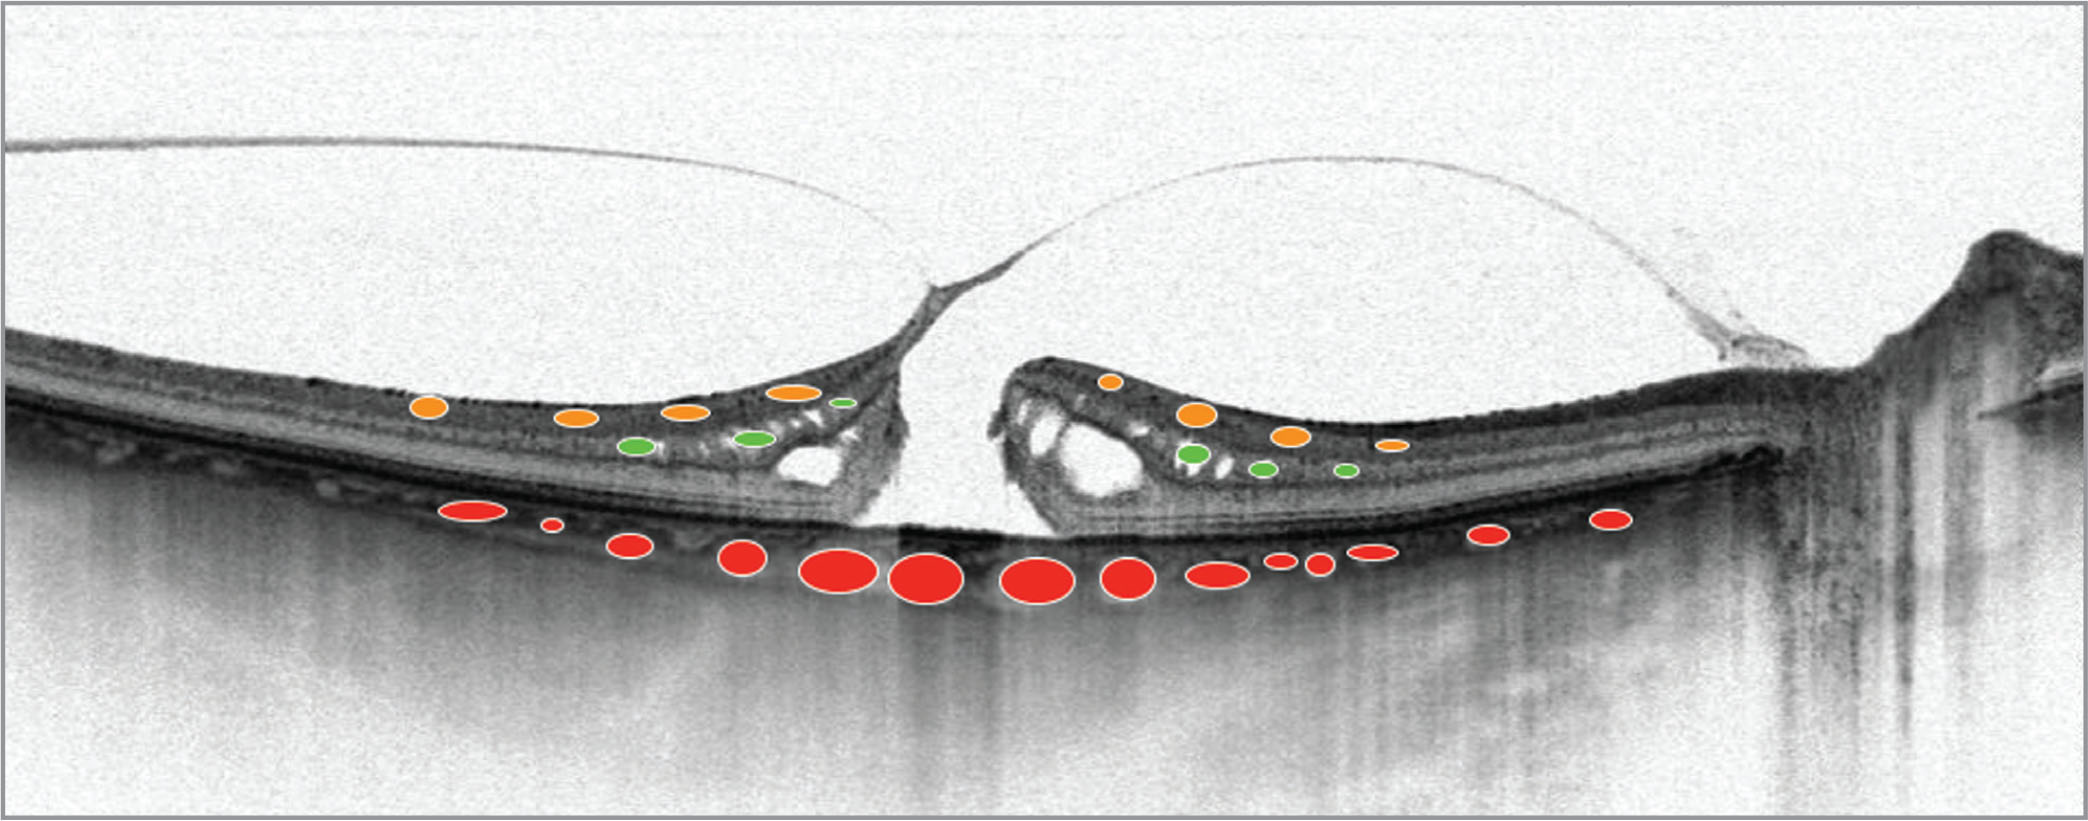 Localization of vessels in particular retina and choroidal layers. Orange circles represent superficial retina vessel plexus. Green circles represent deep retina vessels plexus. Red circles represent choriocapillaries.